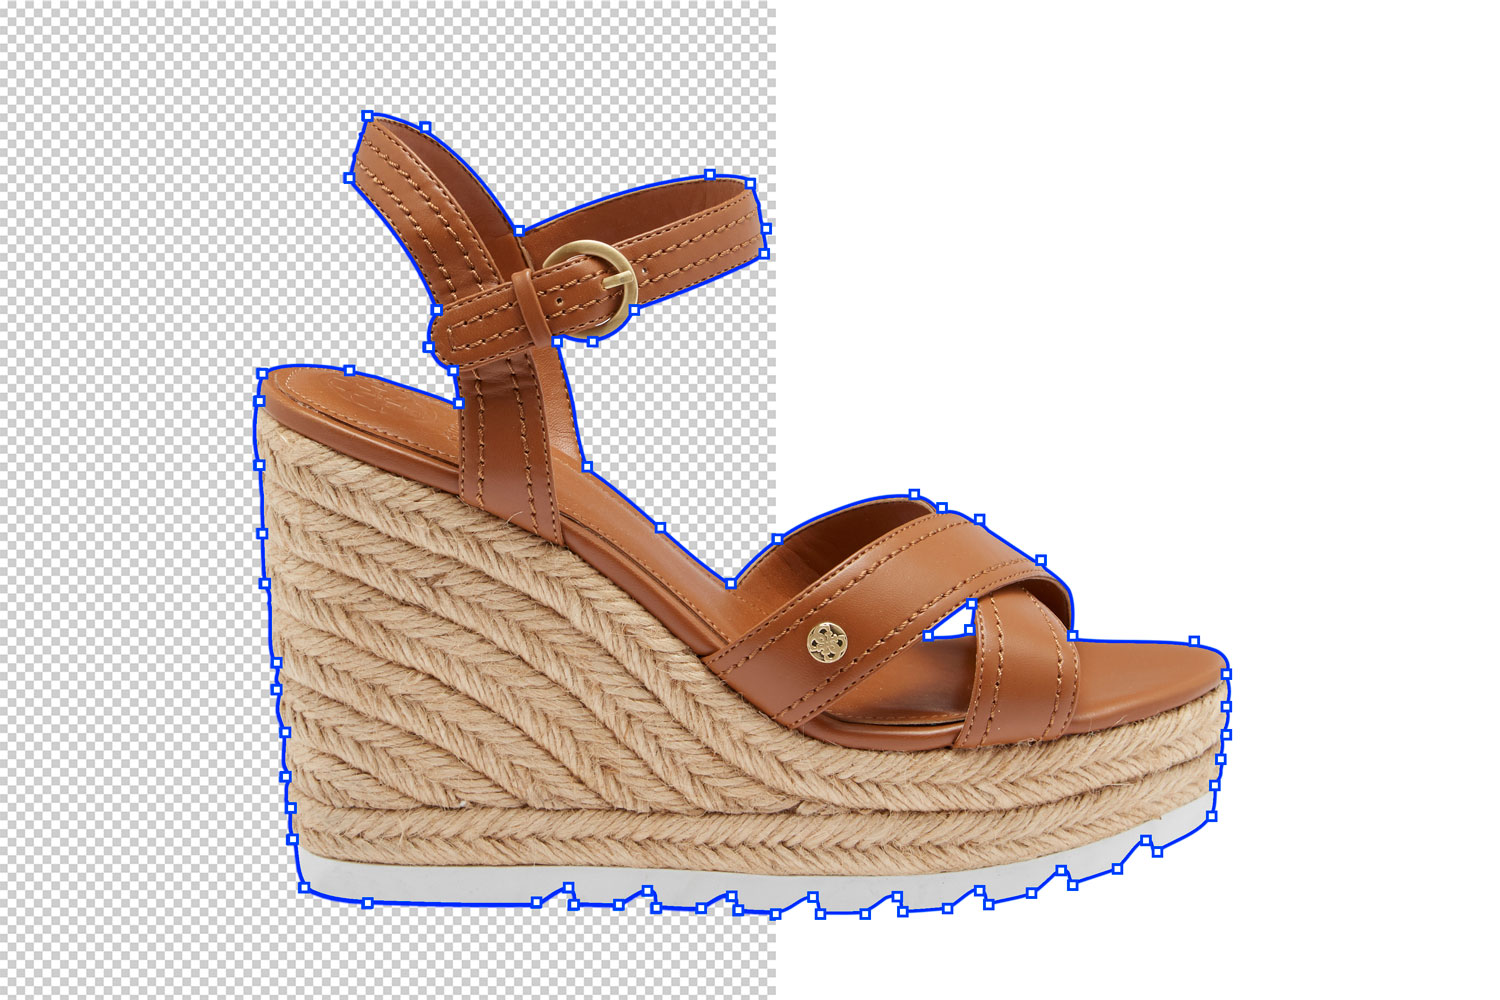 clipping path_clipping path service